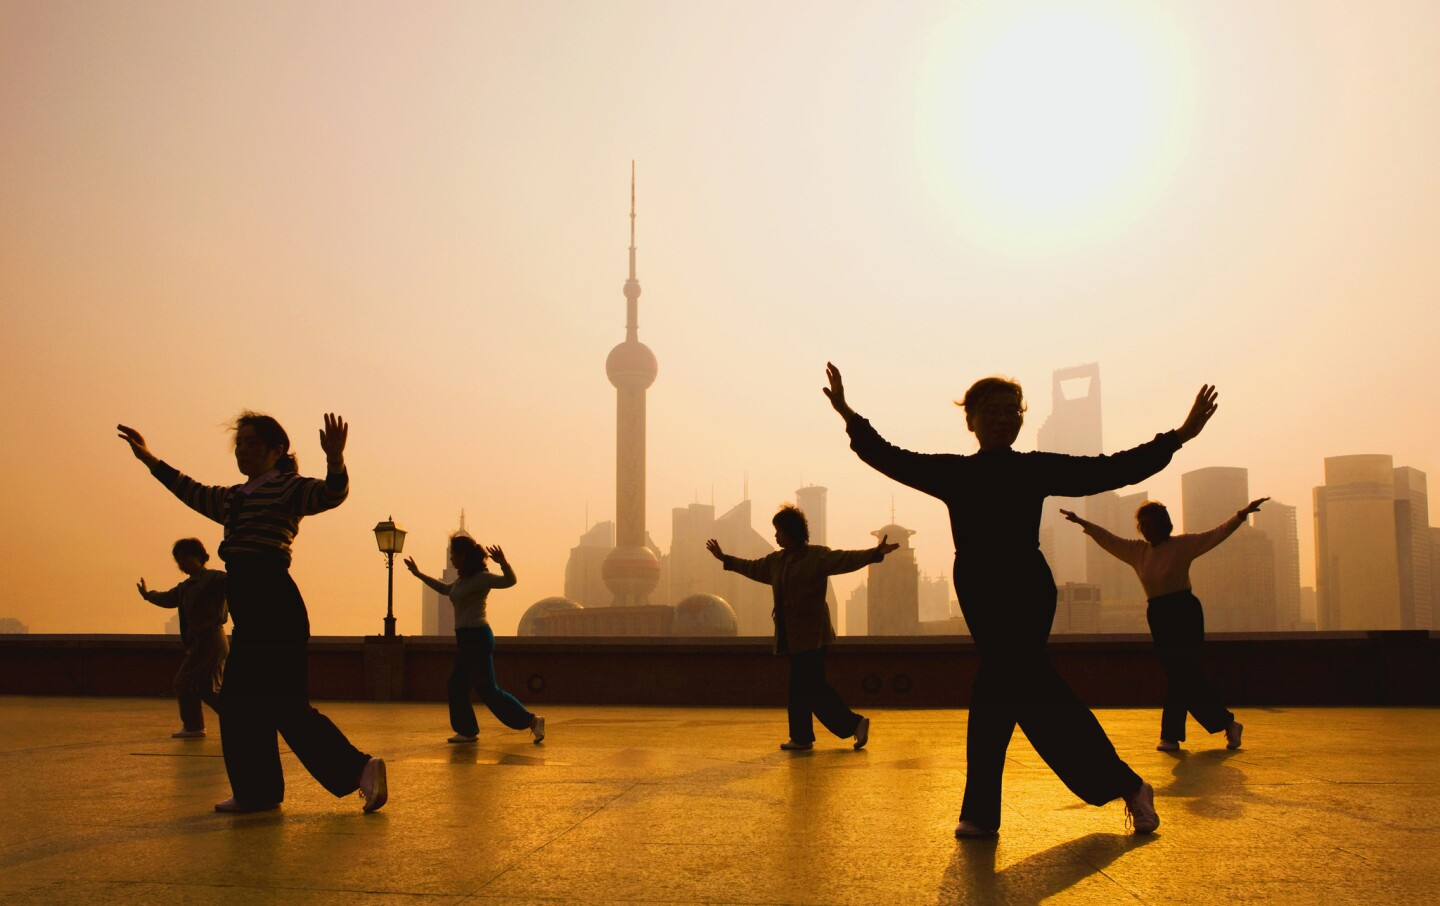 People gather to practice movements on the Bund, with the Shanghai skyline in the background.